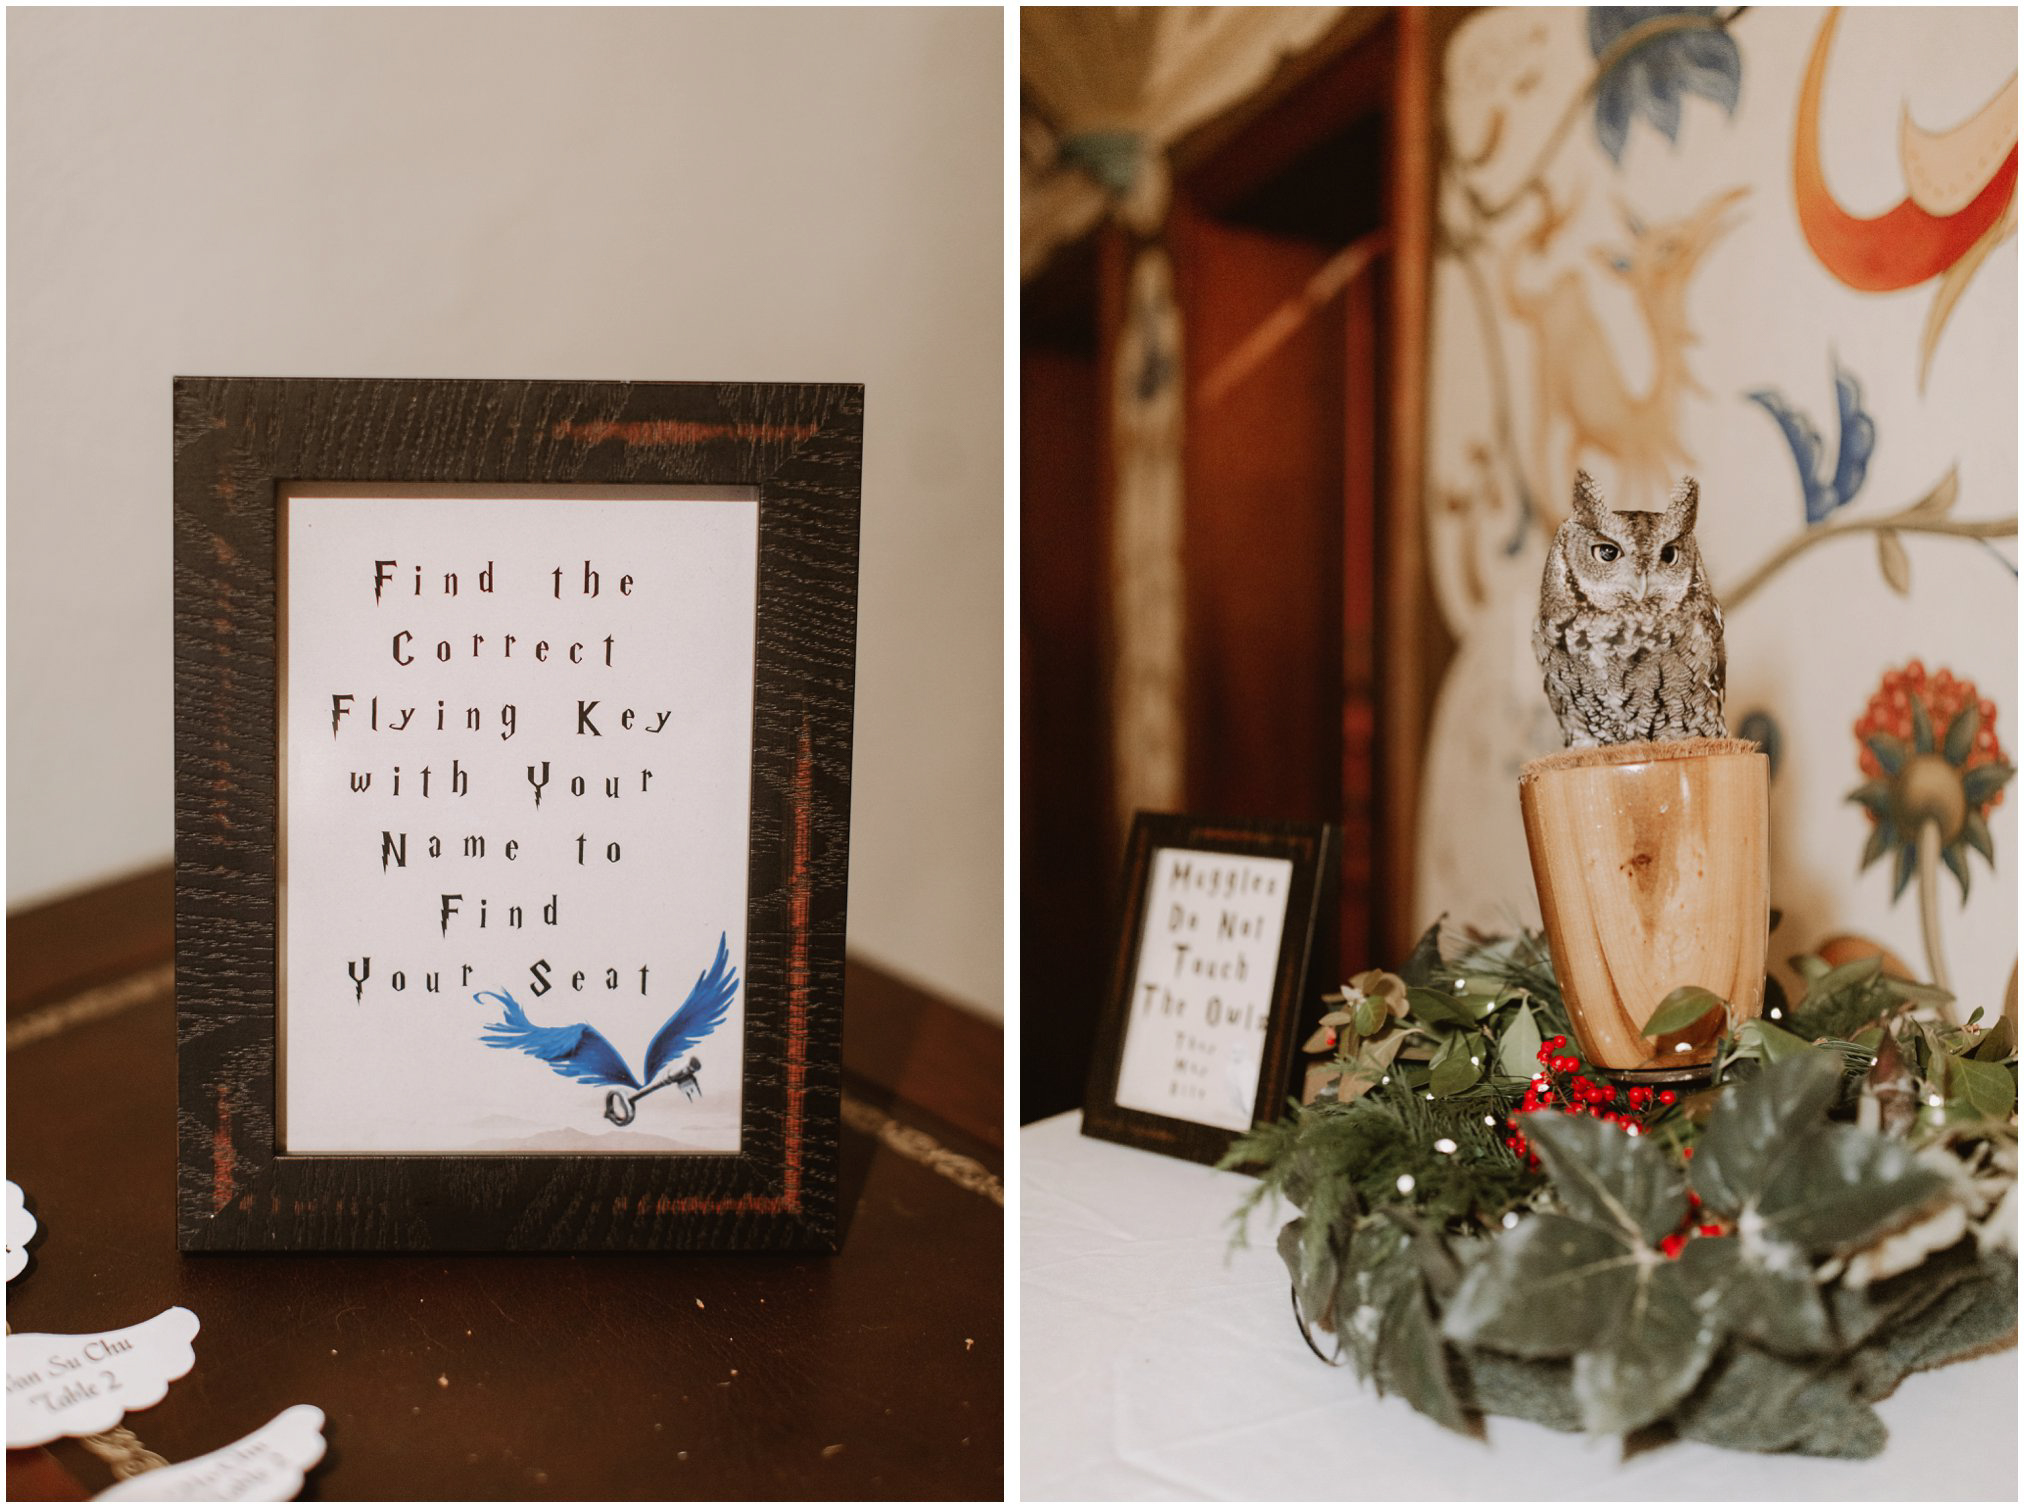 Harry Potter Themed Wedding With Hedwig Owl